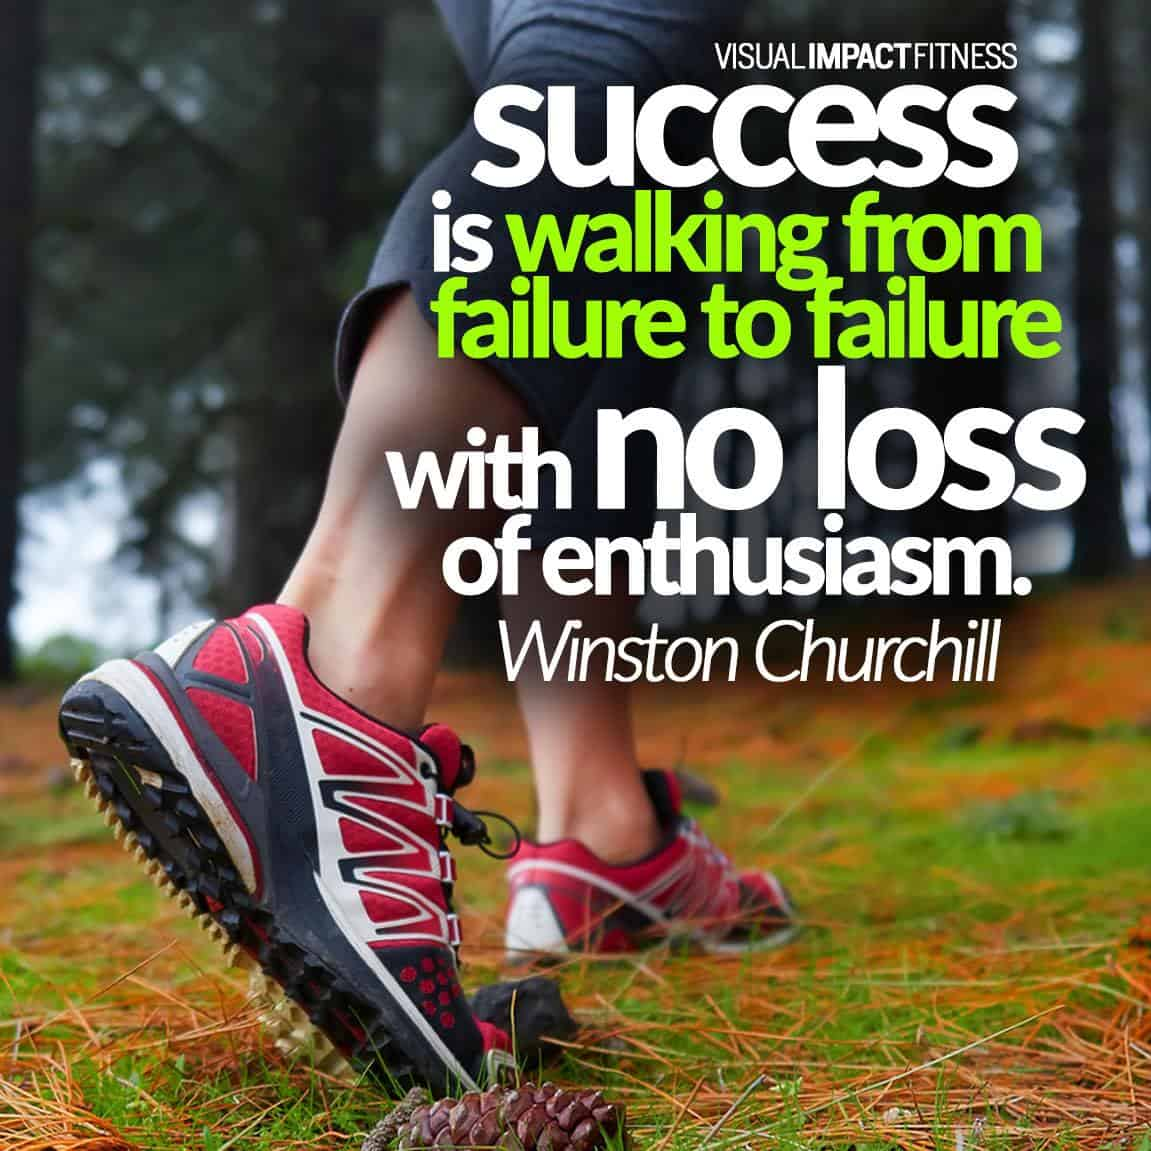 Success is walking failure to failure with no loss of enthusiasm